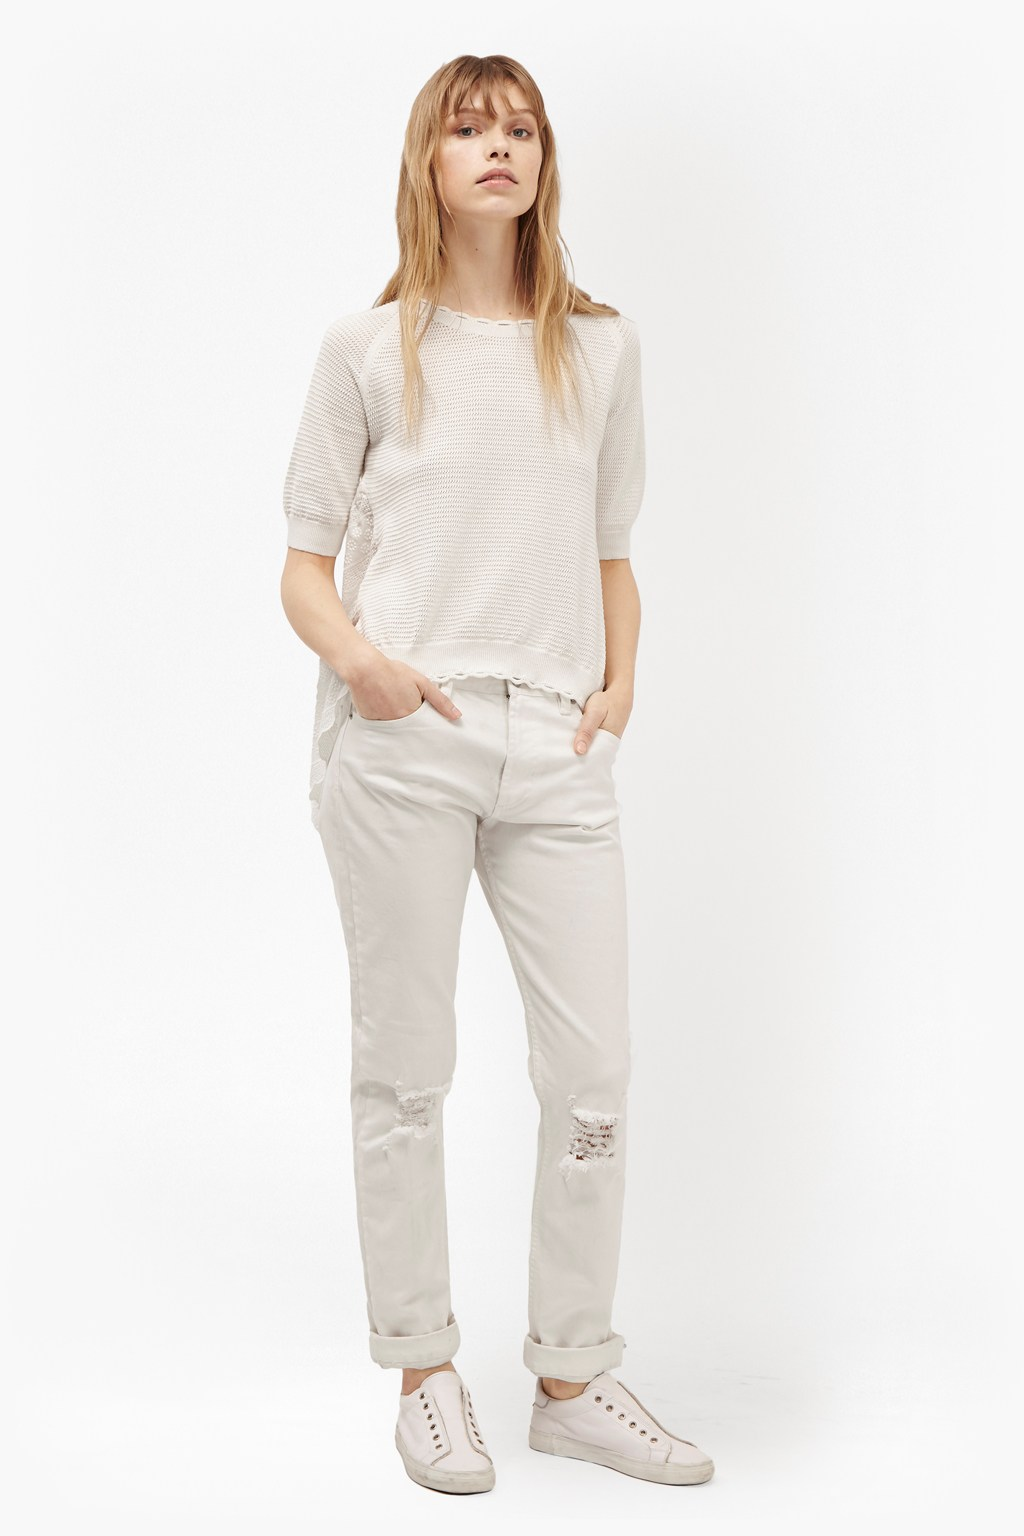 Celia Scallop Knitted Jumper